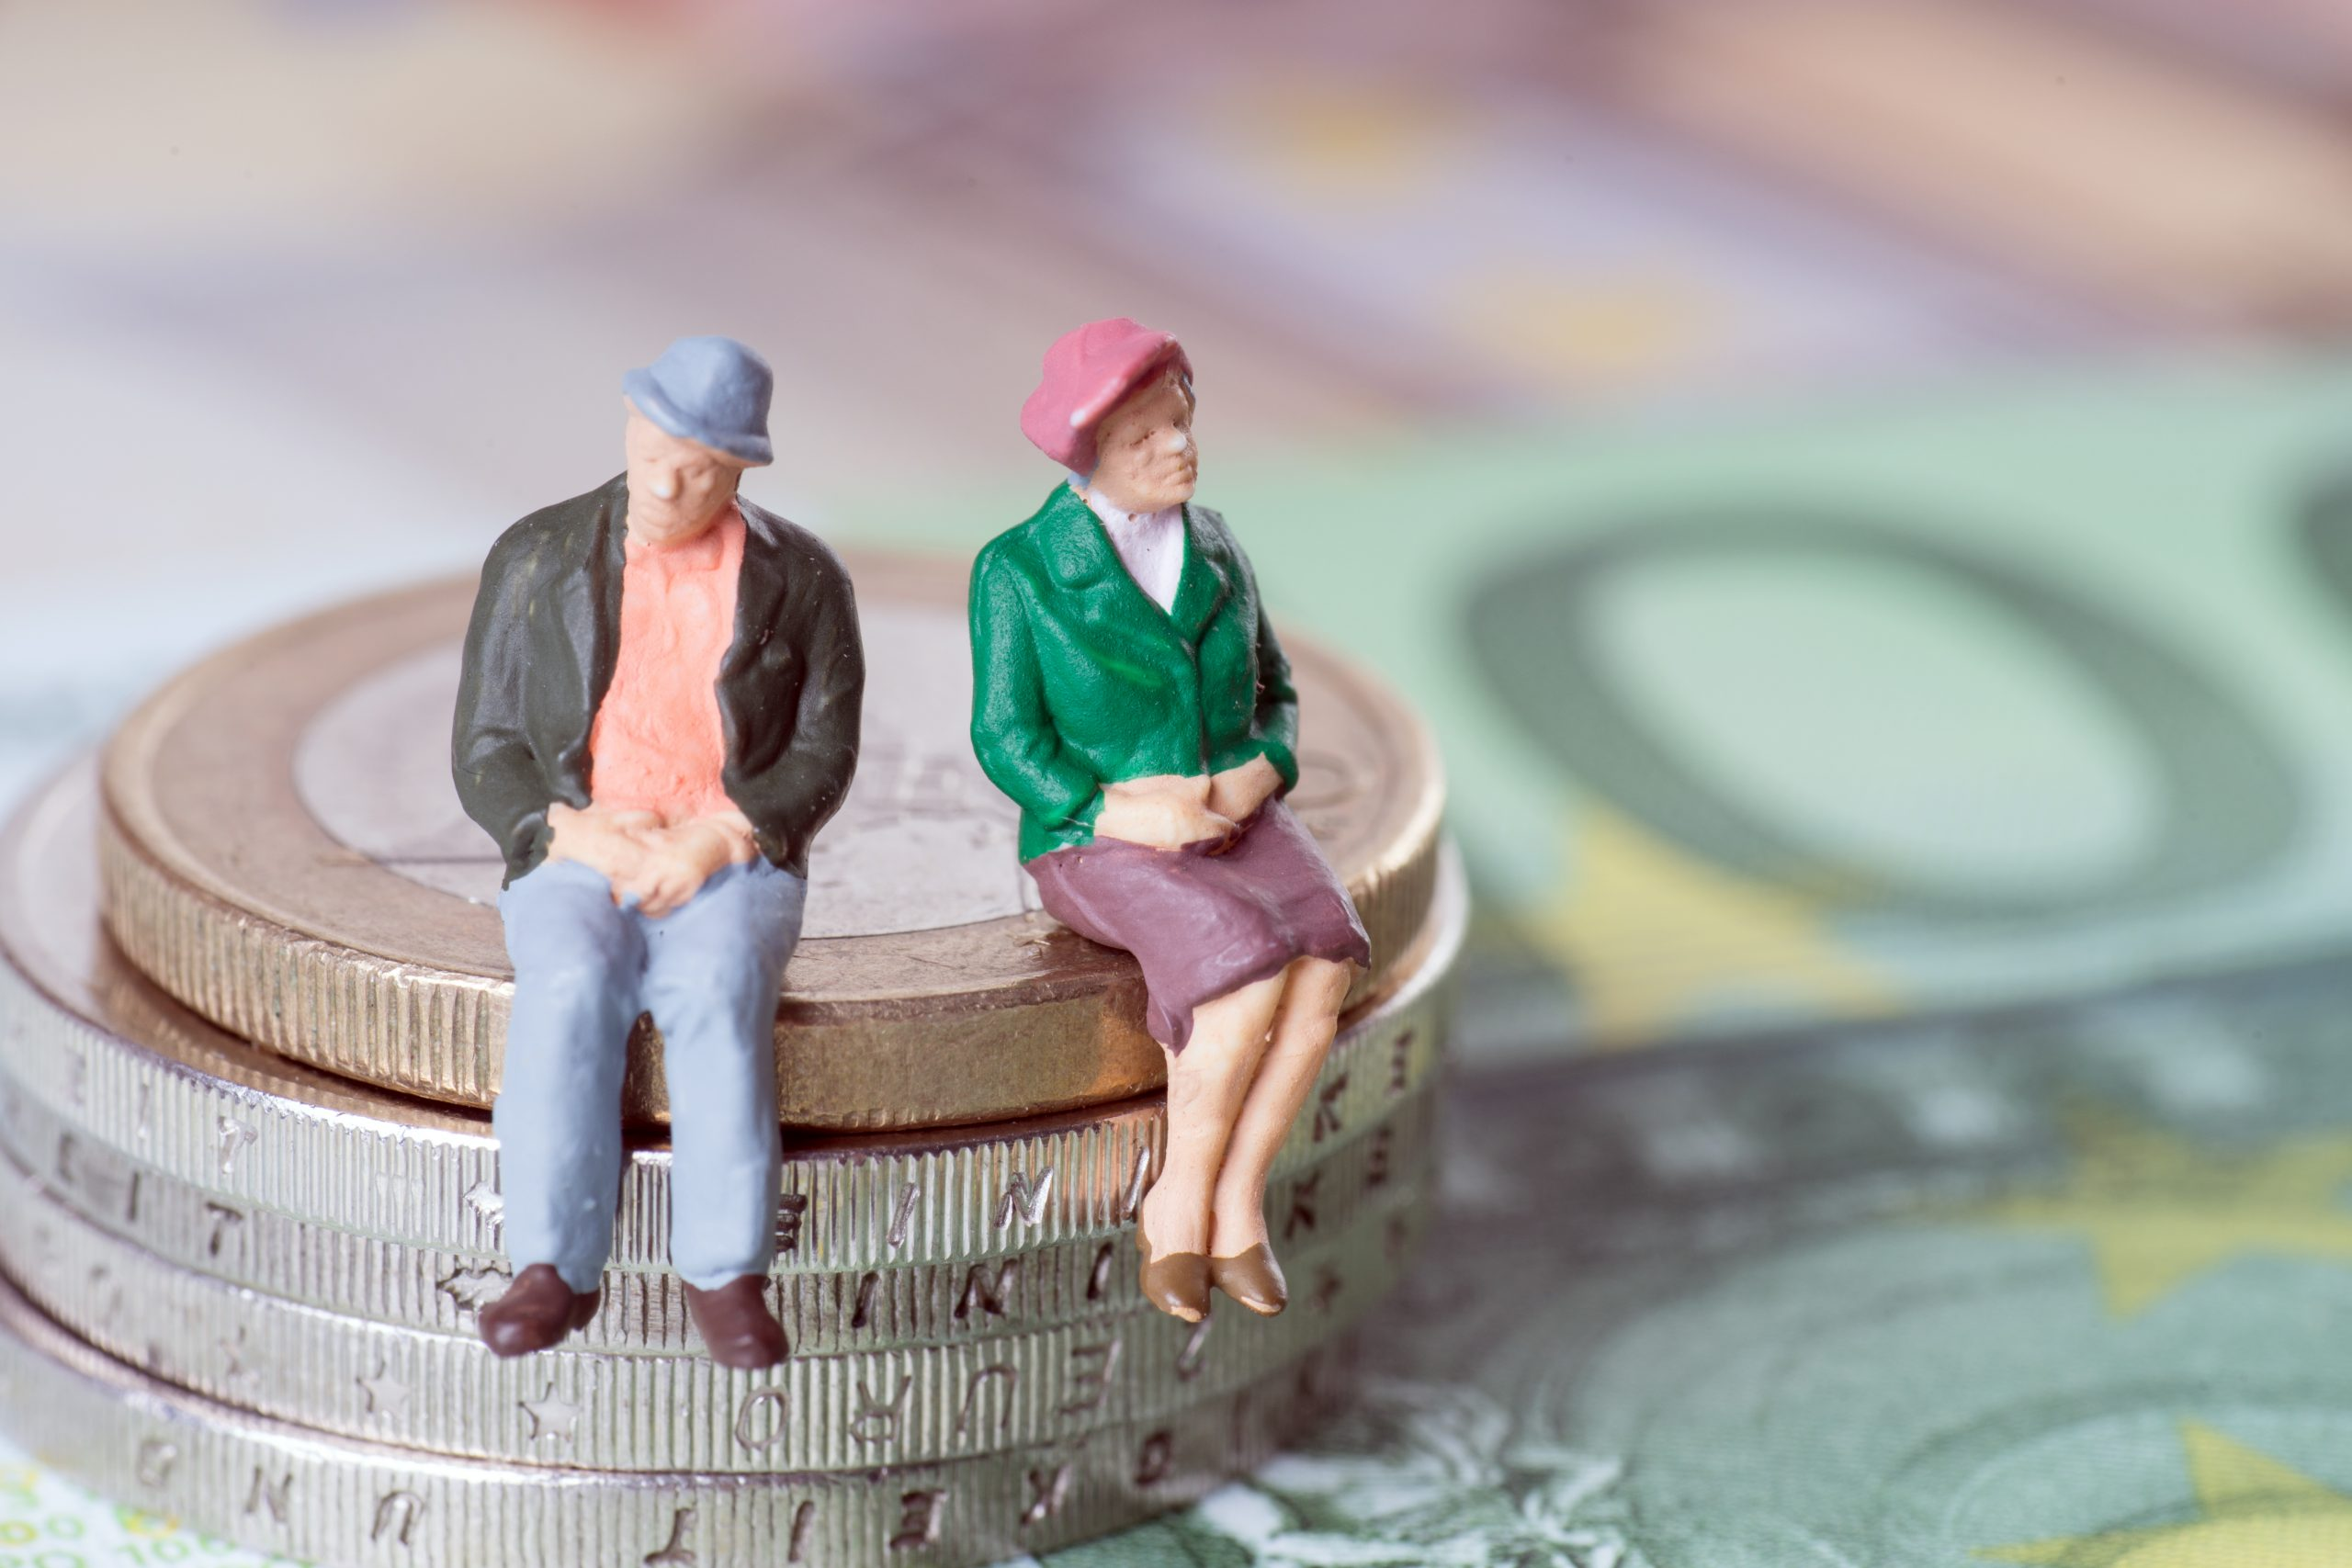 Two people sitting on some coins